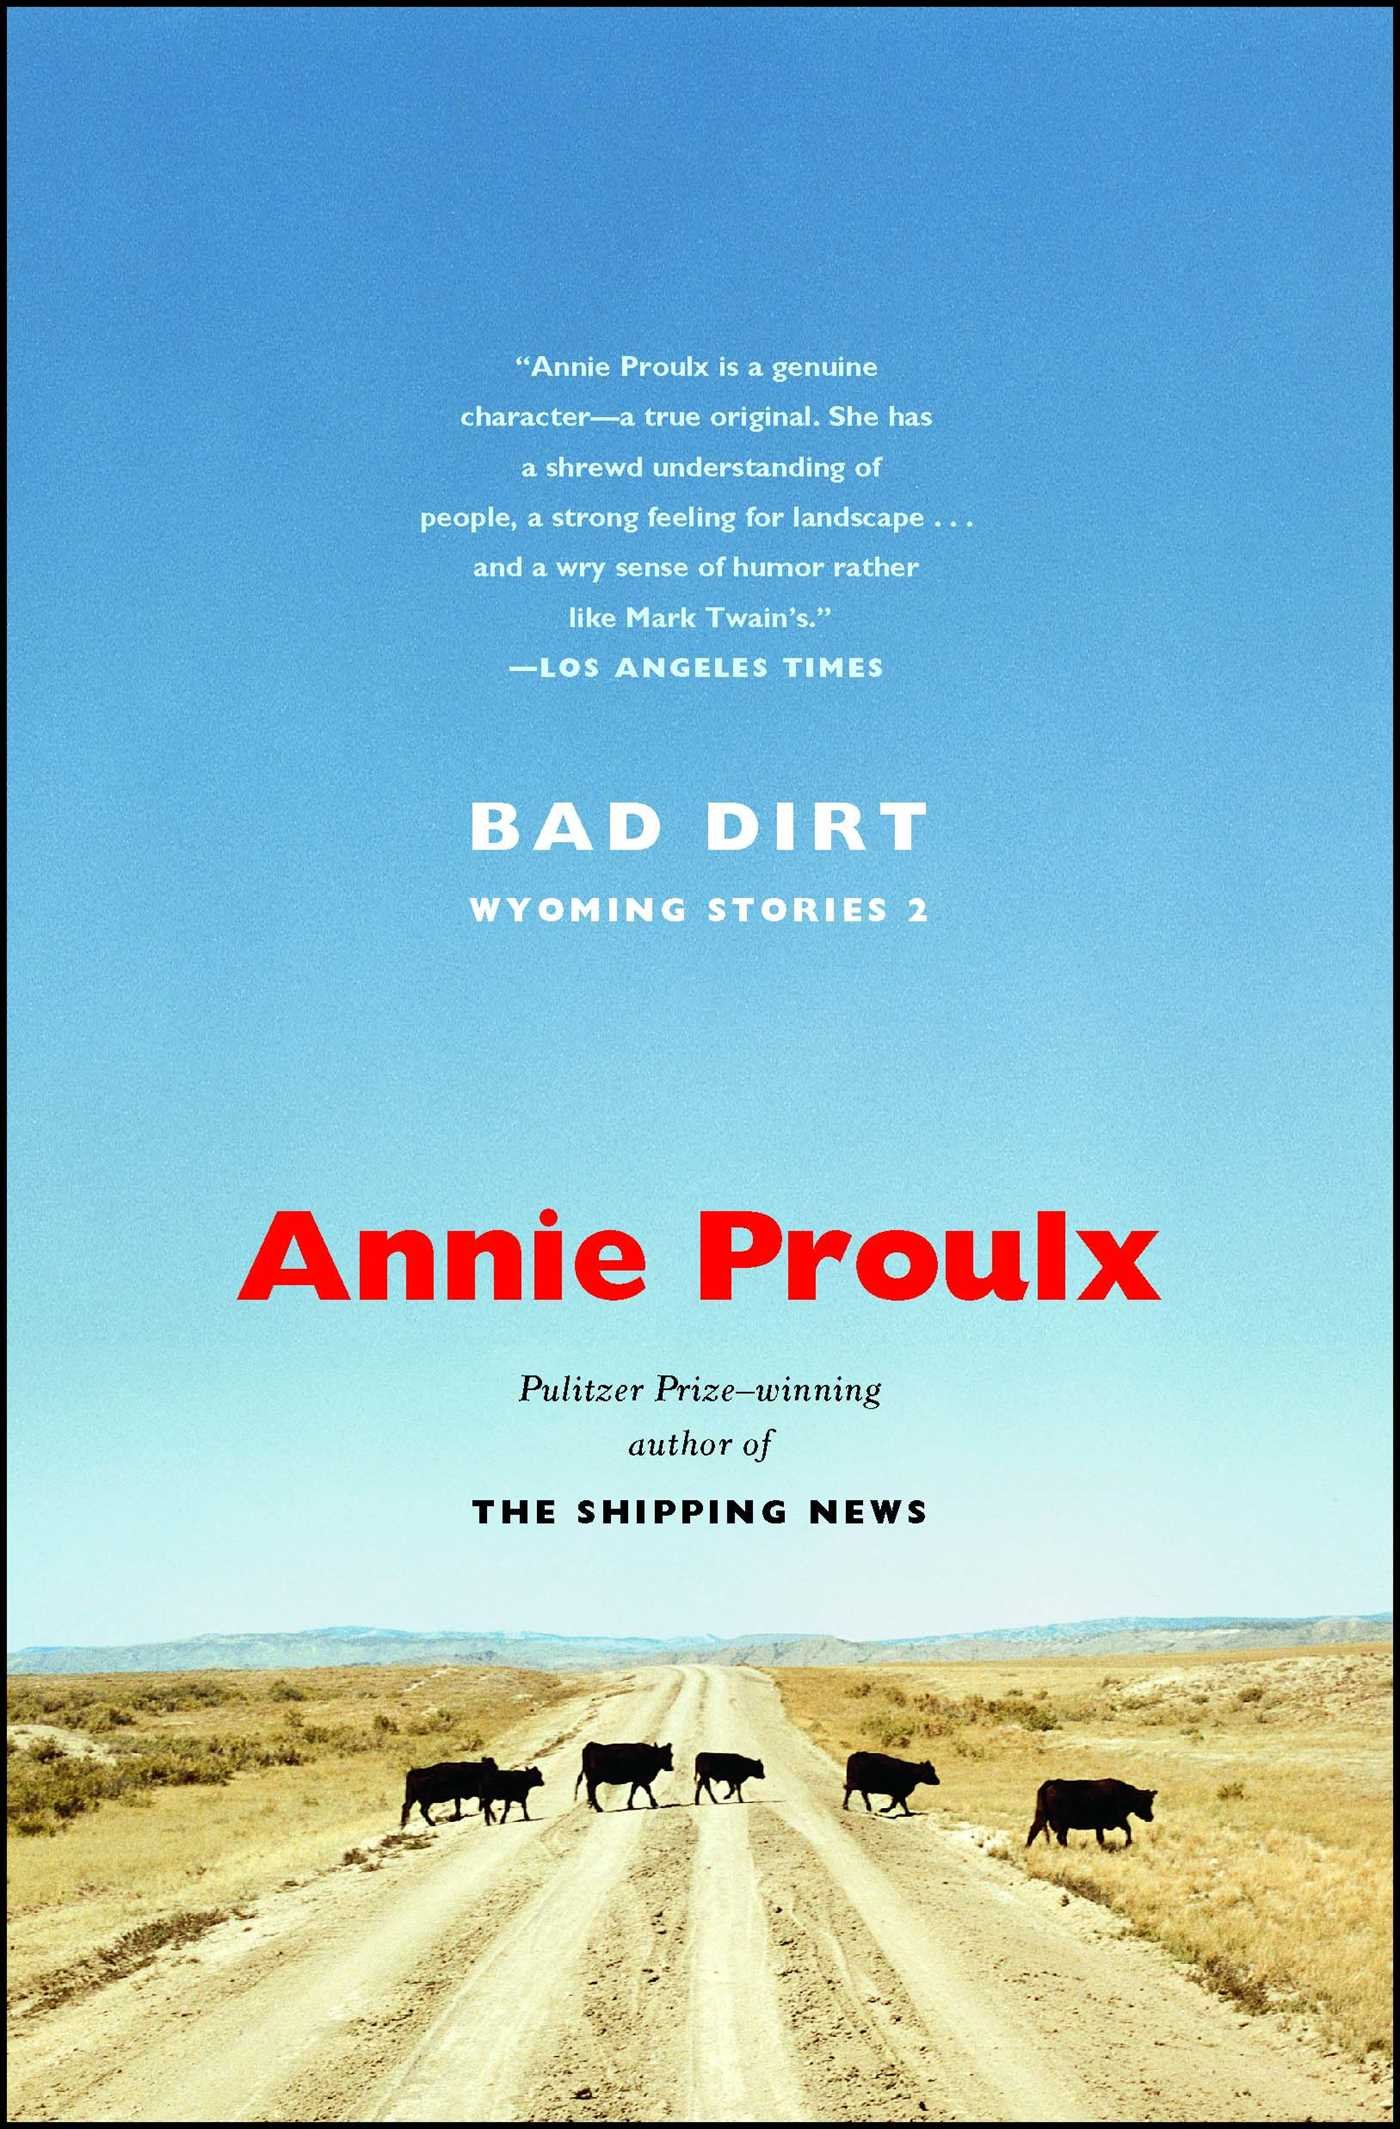 Amazon.com: Bad Dirt: Wyoming Stories 2 (9780743260145): Annie Proulx: Books